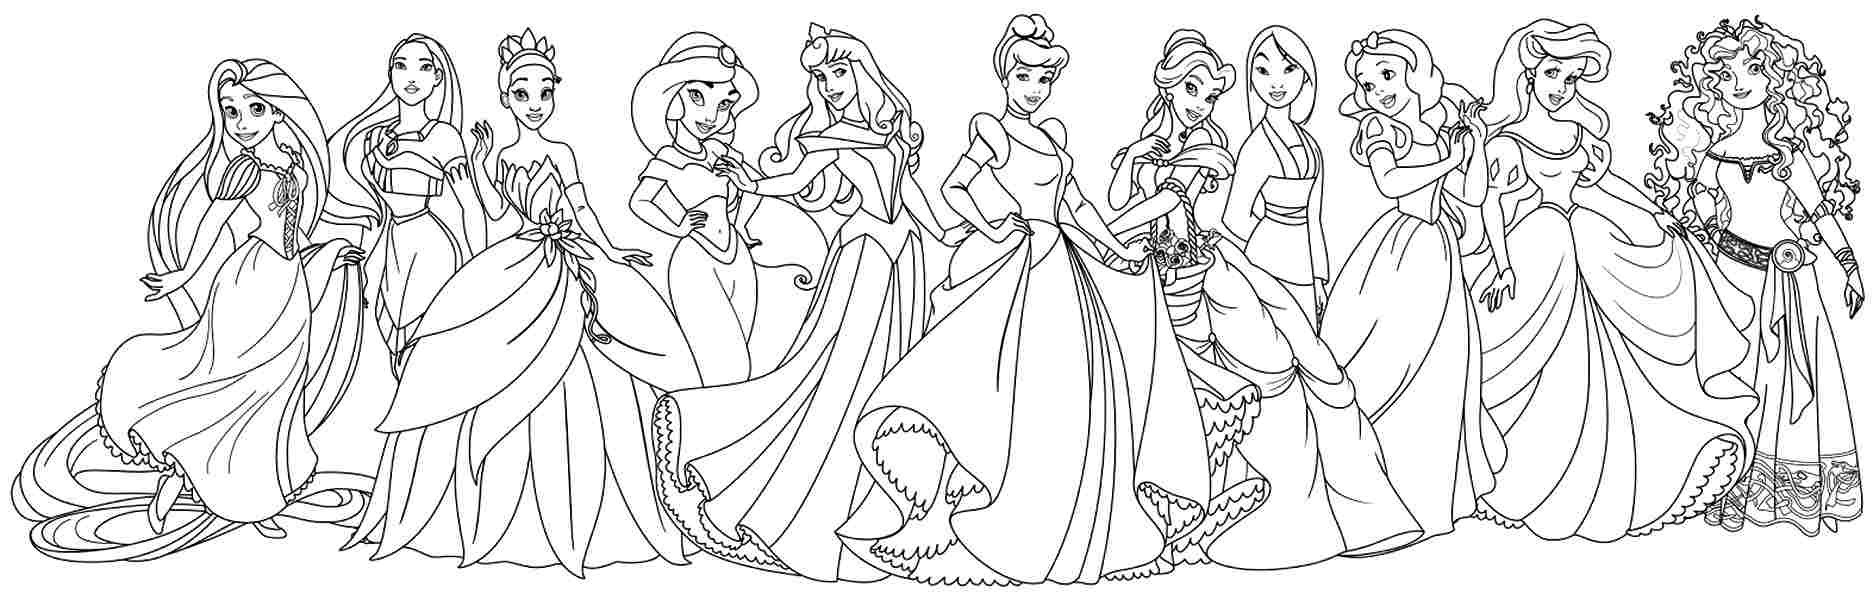 Best ideas about Coloring Pages For Girls Disney Princess . Save or Pin disney princess coloring pages for girls Free Coloring Sheets Now.